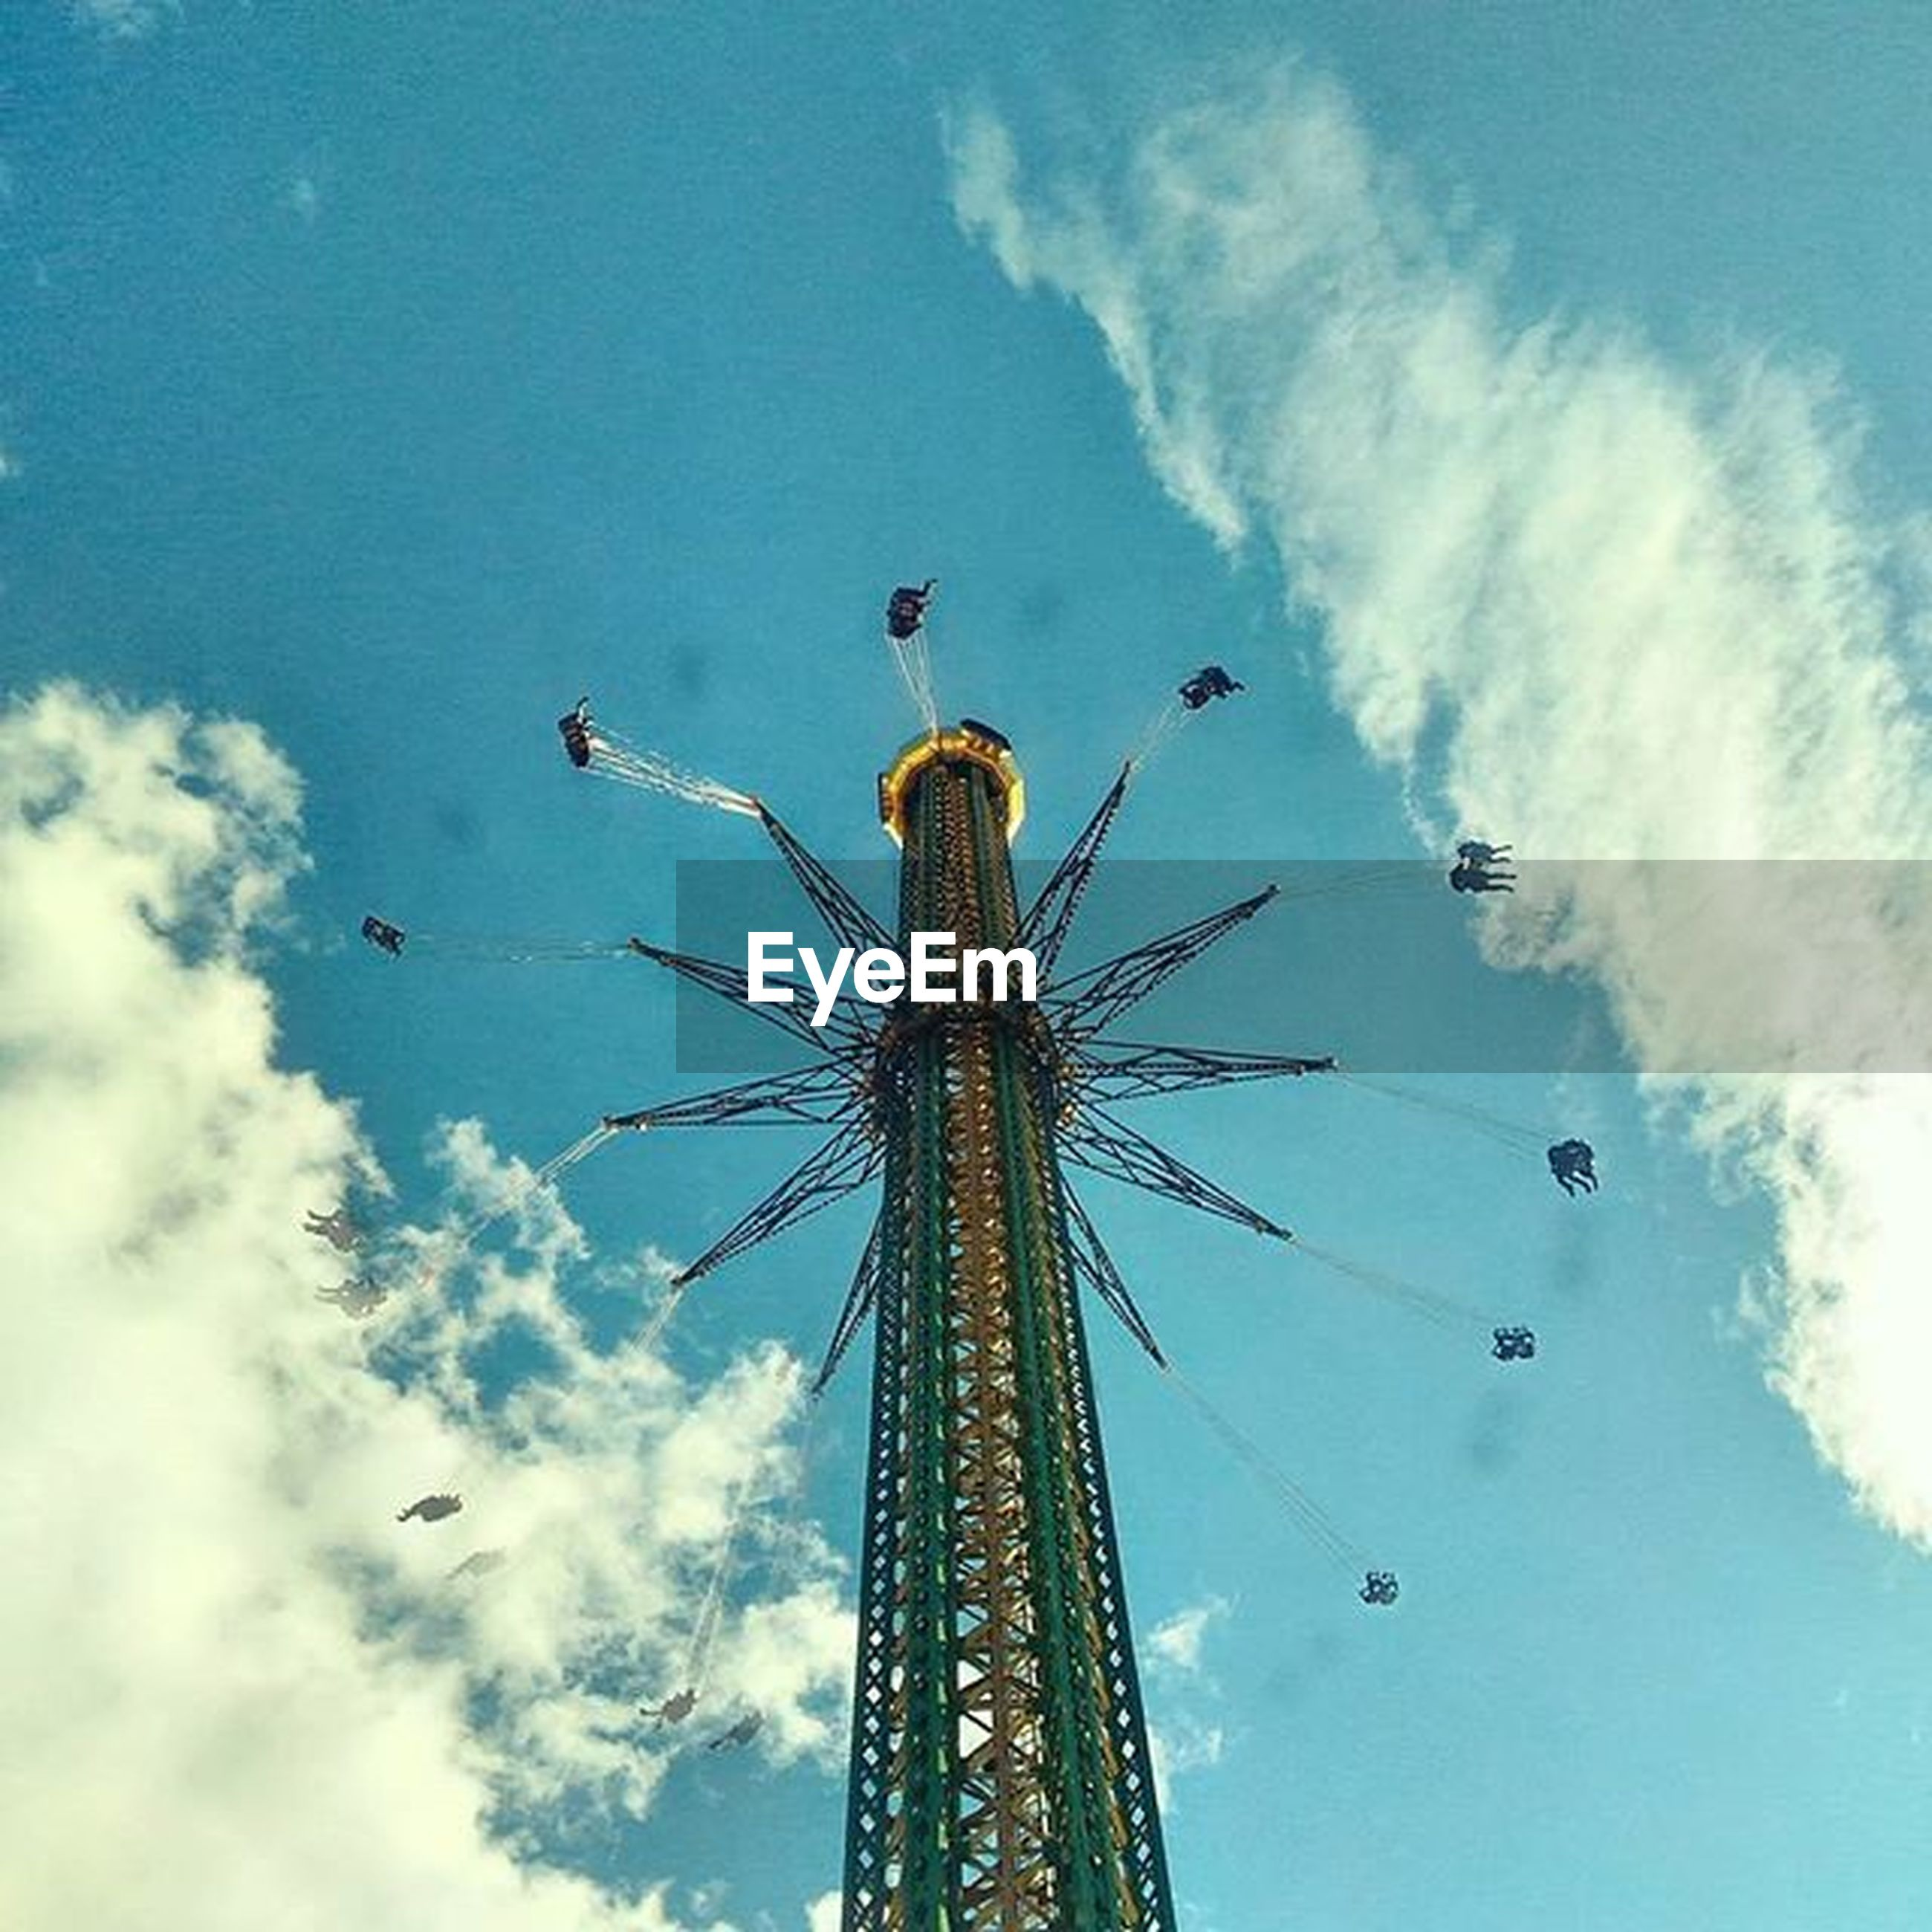 low angle view, amusement park, amusement park ride, arts culture and entertainment, sky, ferris wheel, cloud - sky, chain swing ride, fun, enjoyment, built structure, cloudy, tall - high, cloud, architecture, leisure activity, fairground ride, traveling carnival, outdoors, blue